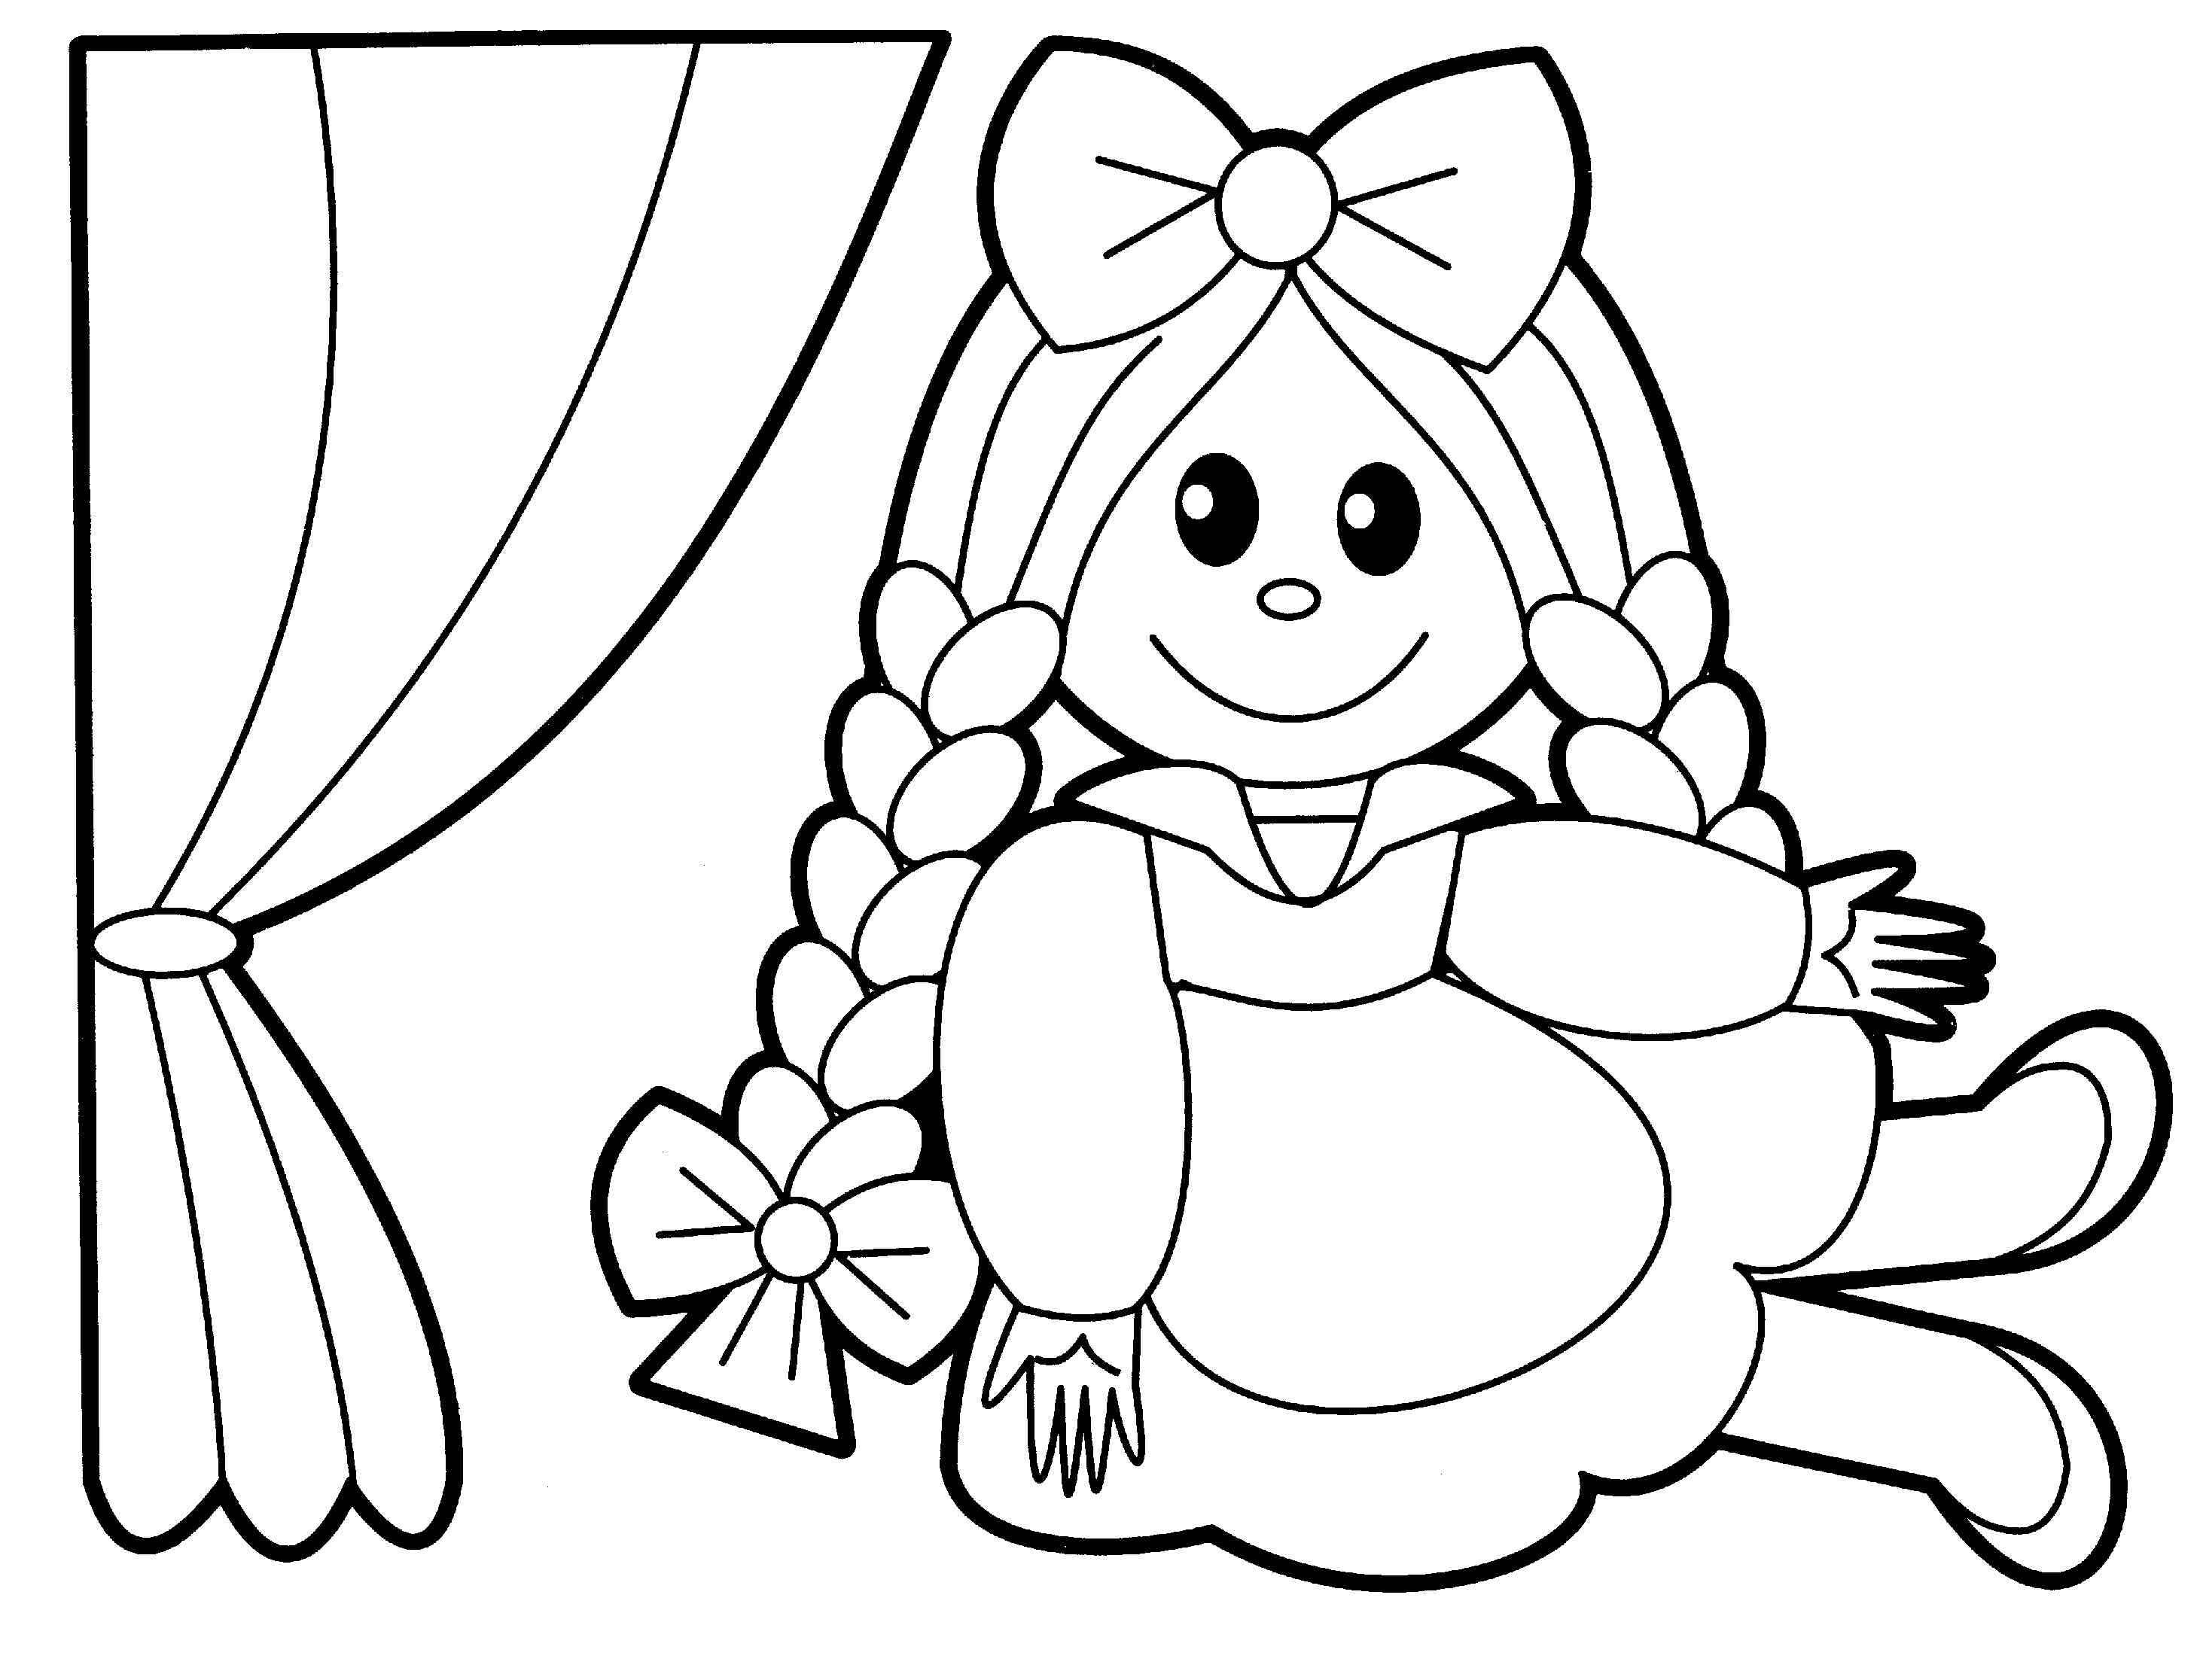 2930x2232 Toy For Attic Coloring Pages For Kids Elegant Coloring Page Toys